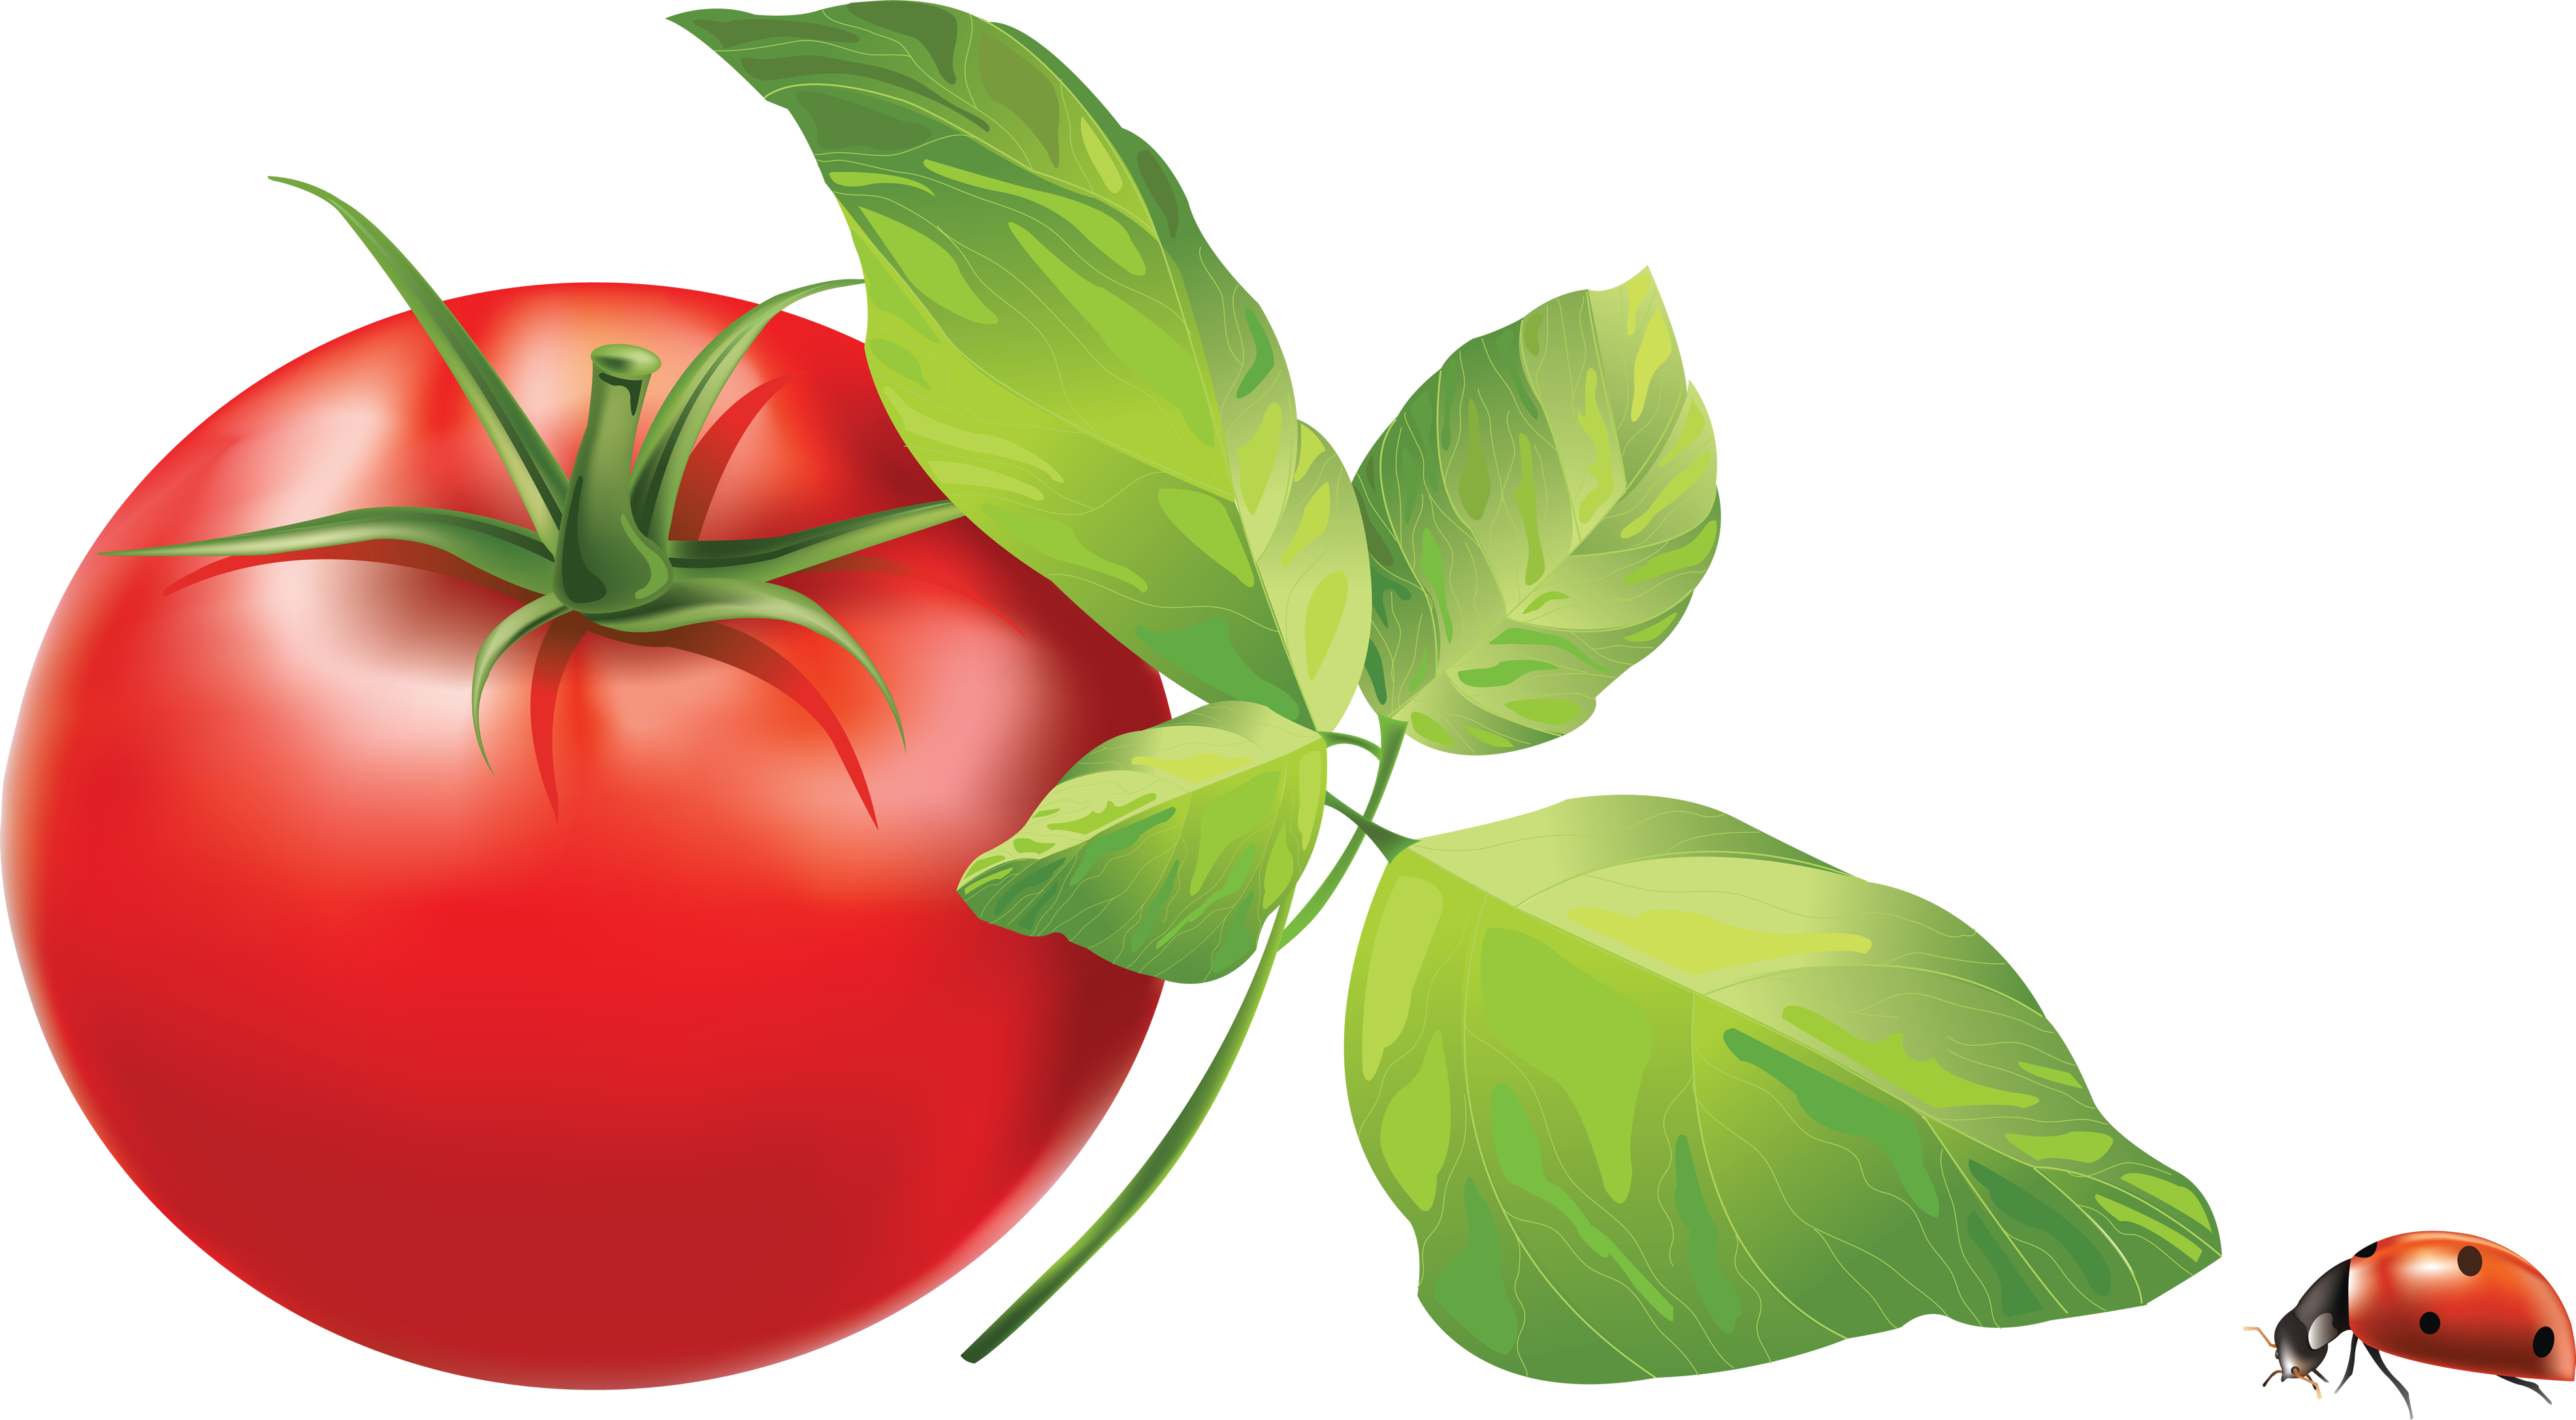 Tomato plant png. Red tomatoes image purepng